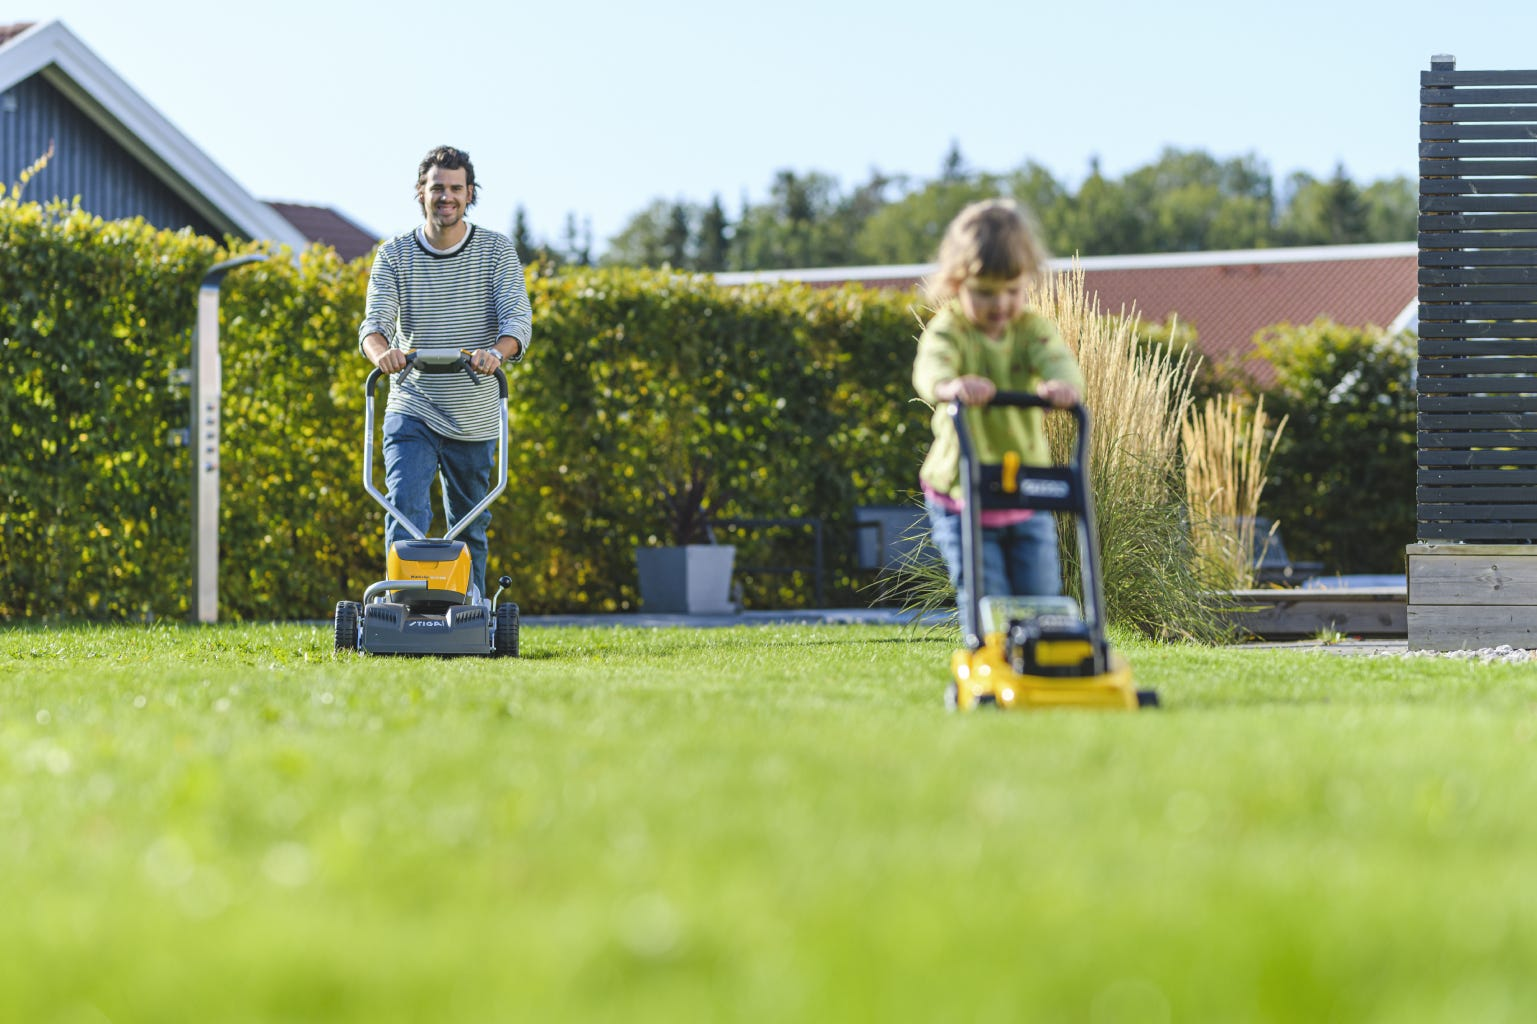 Dad and daughter mowing the lawn with battery lawn mower and yellow toy